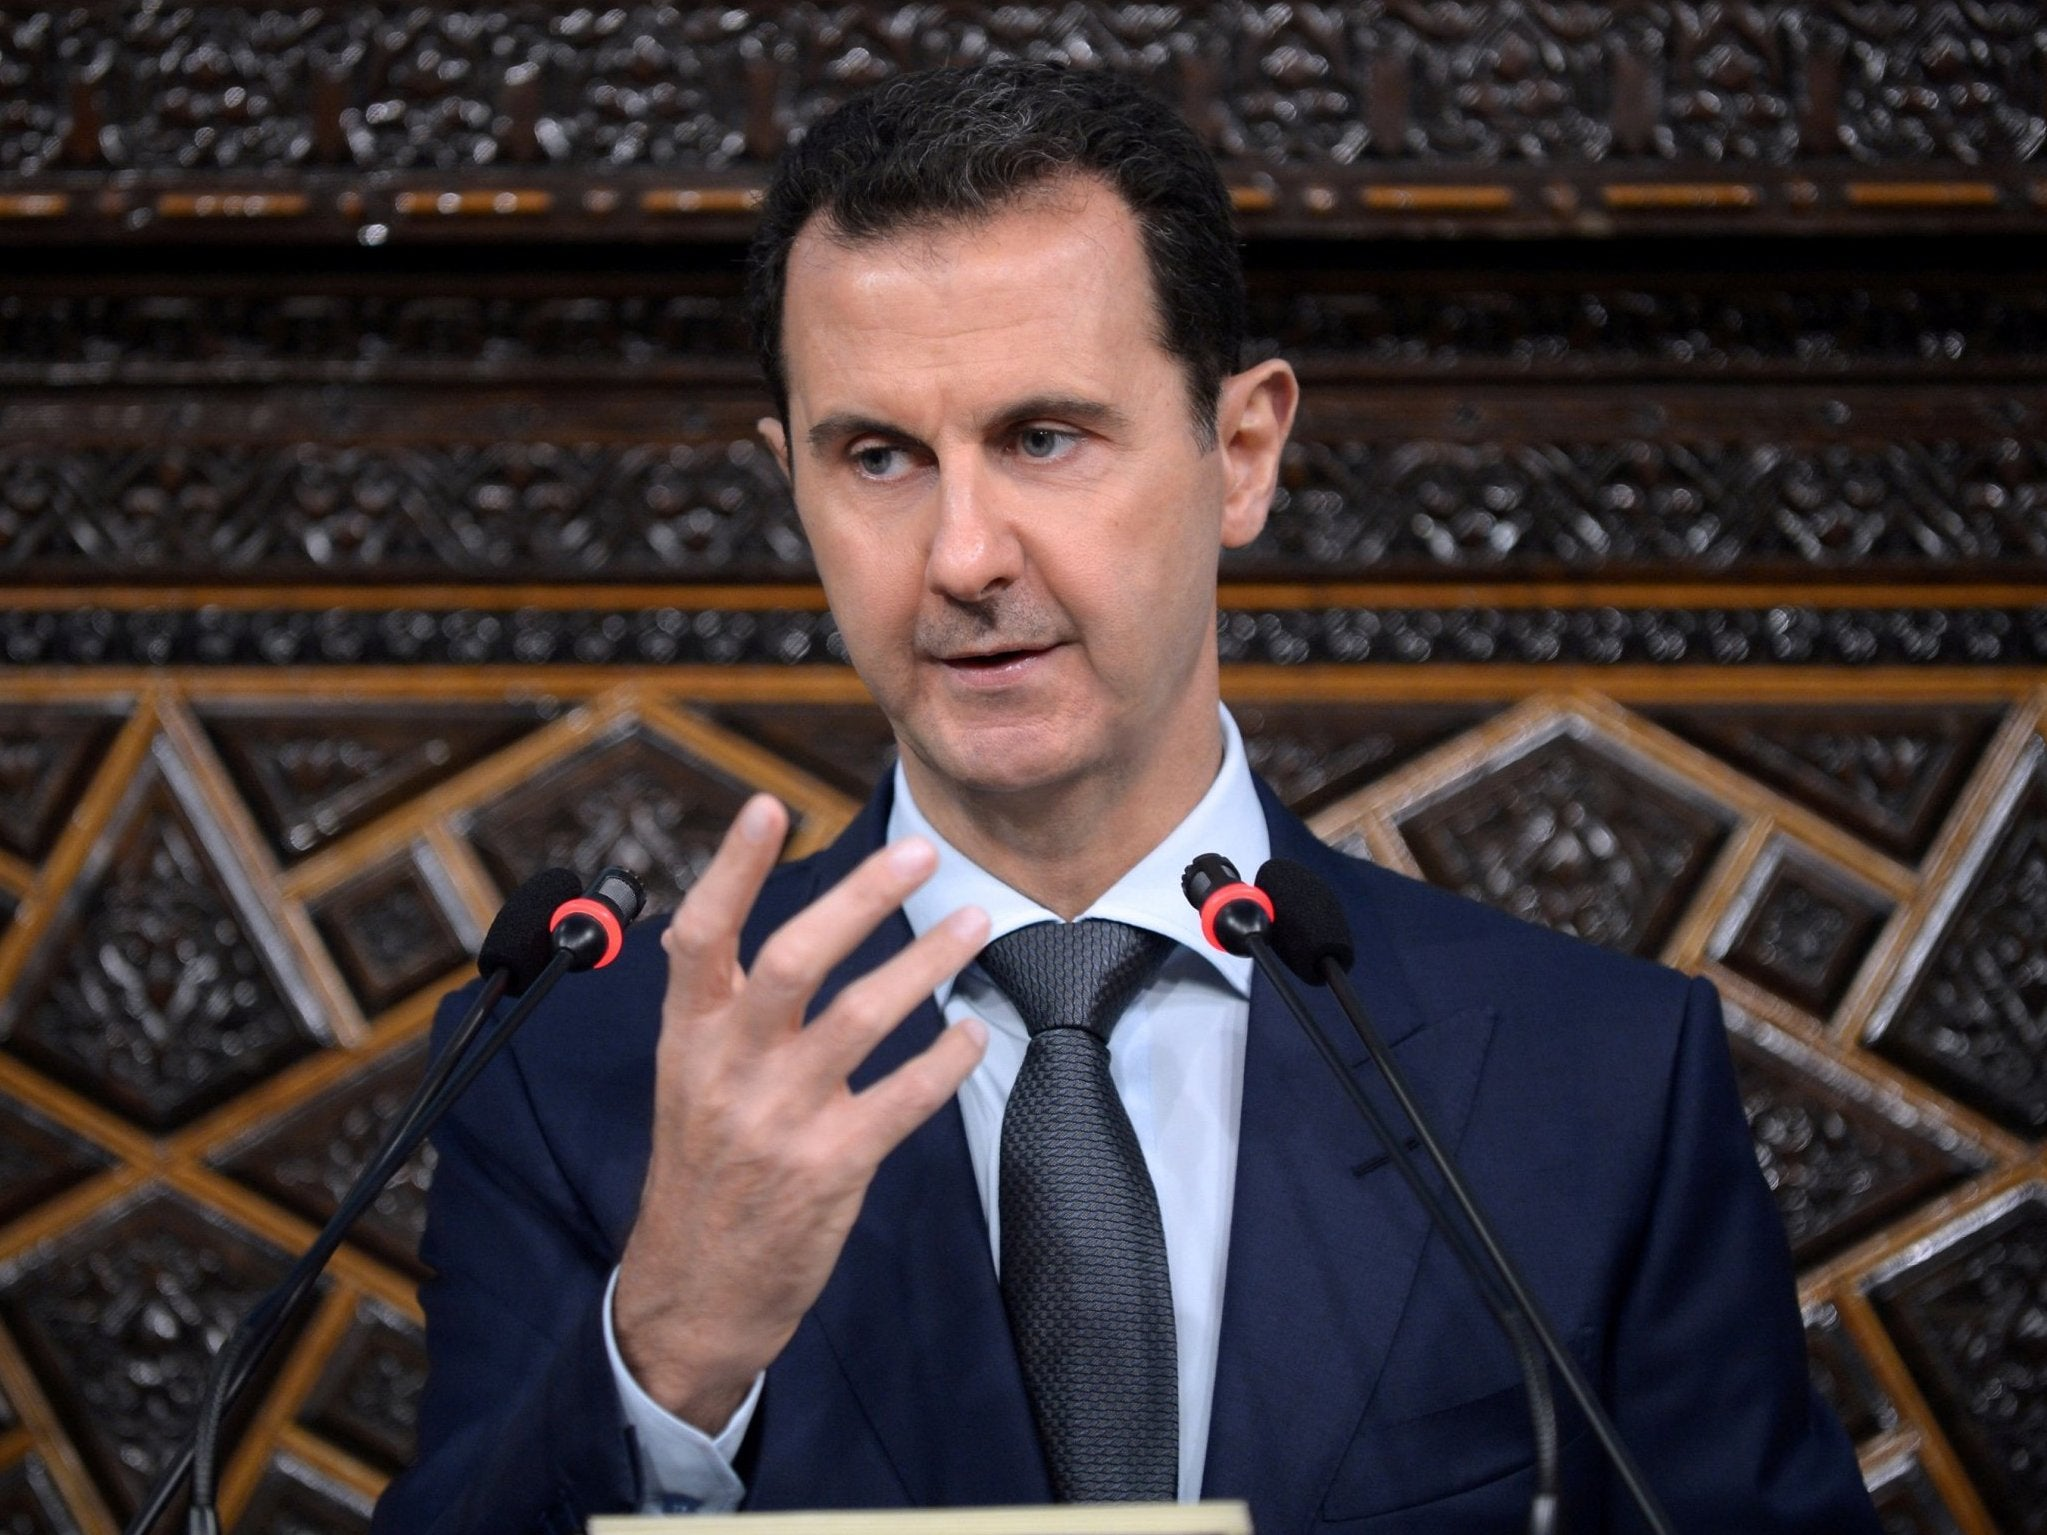 Bashar Al-assad - latest news, breaking stories and comment